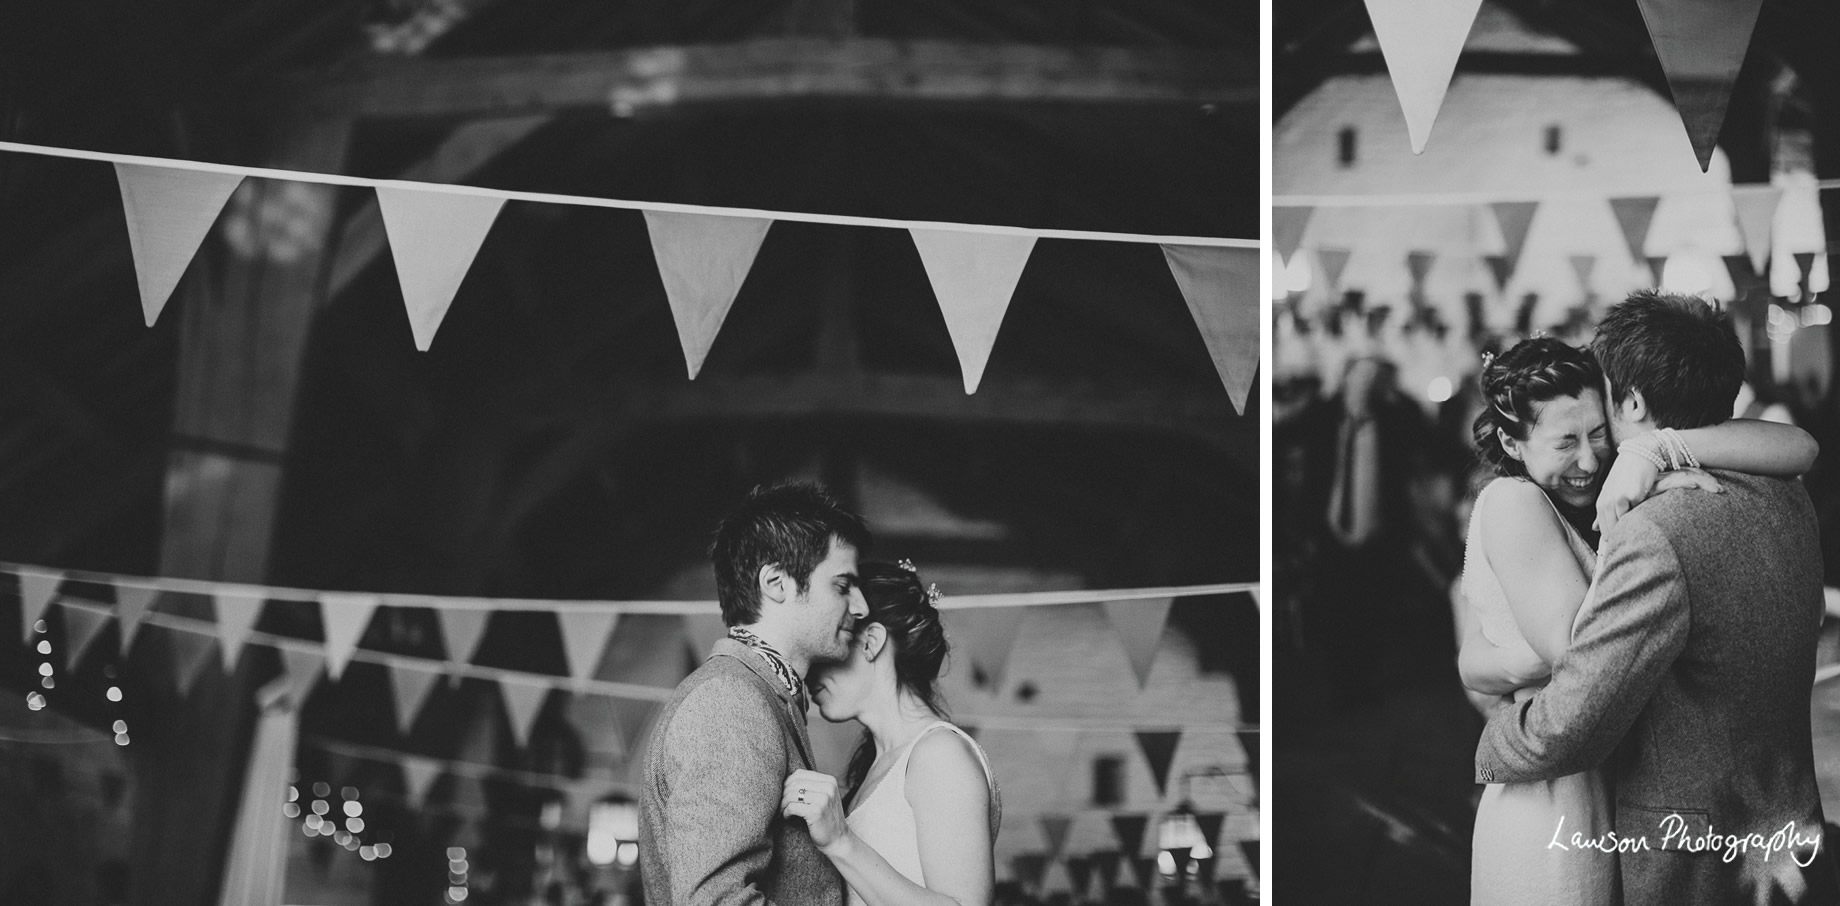 Foxley-Photography-An-Epic-Wedding-Journey-047